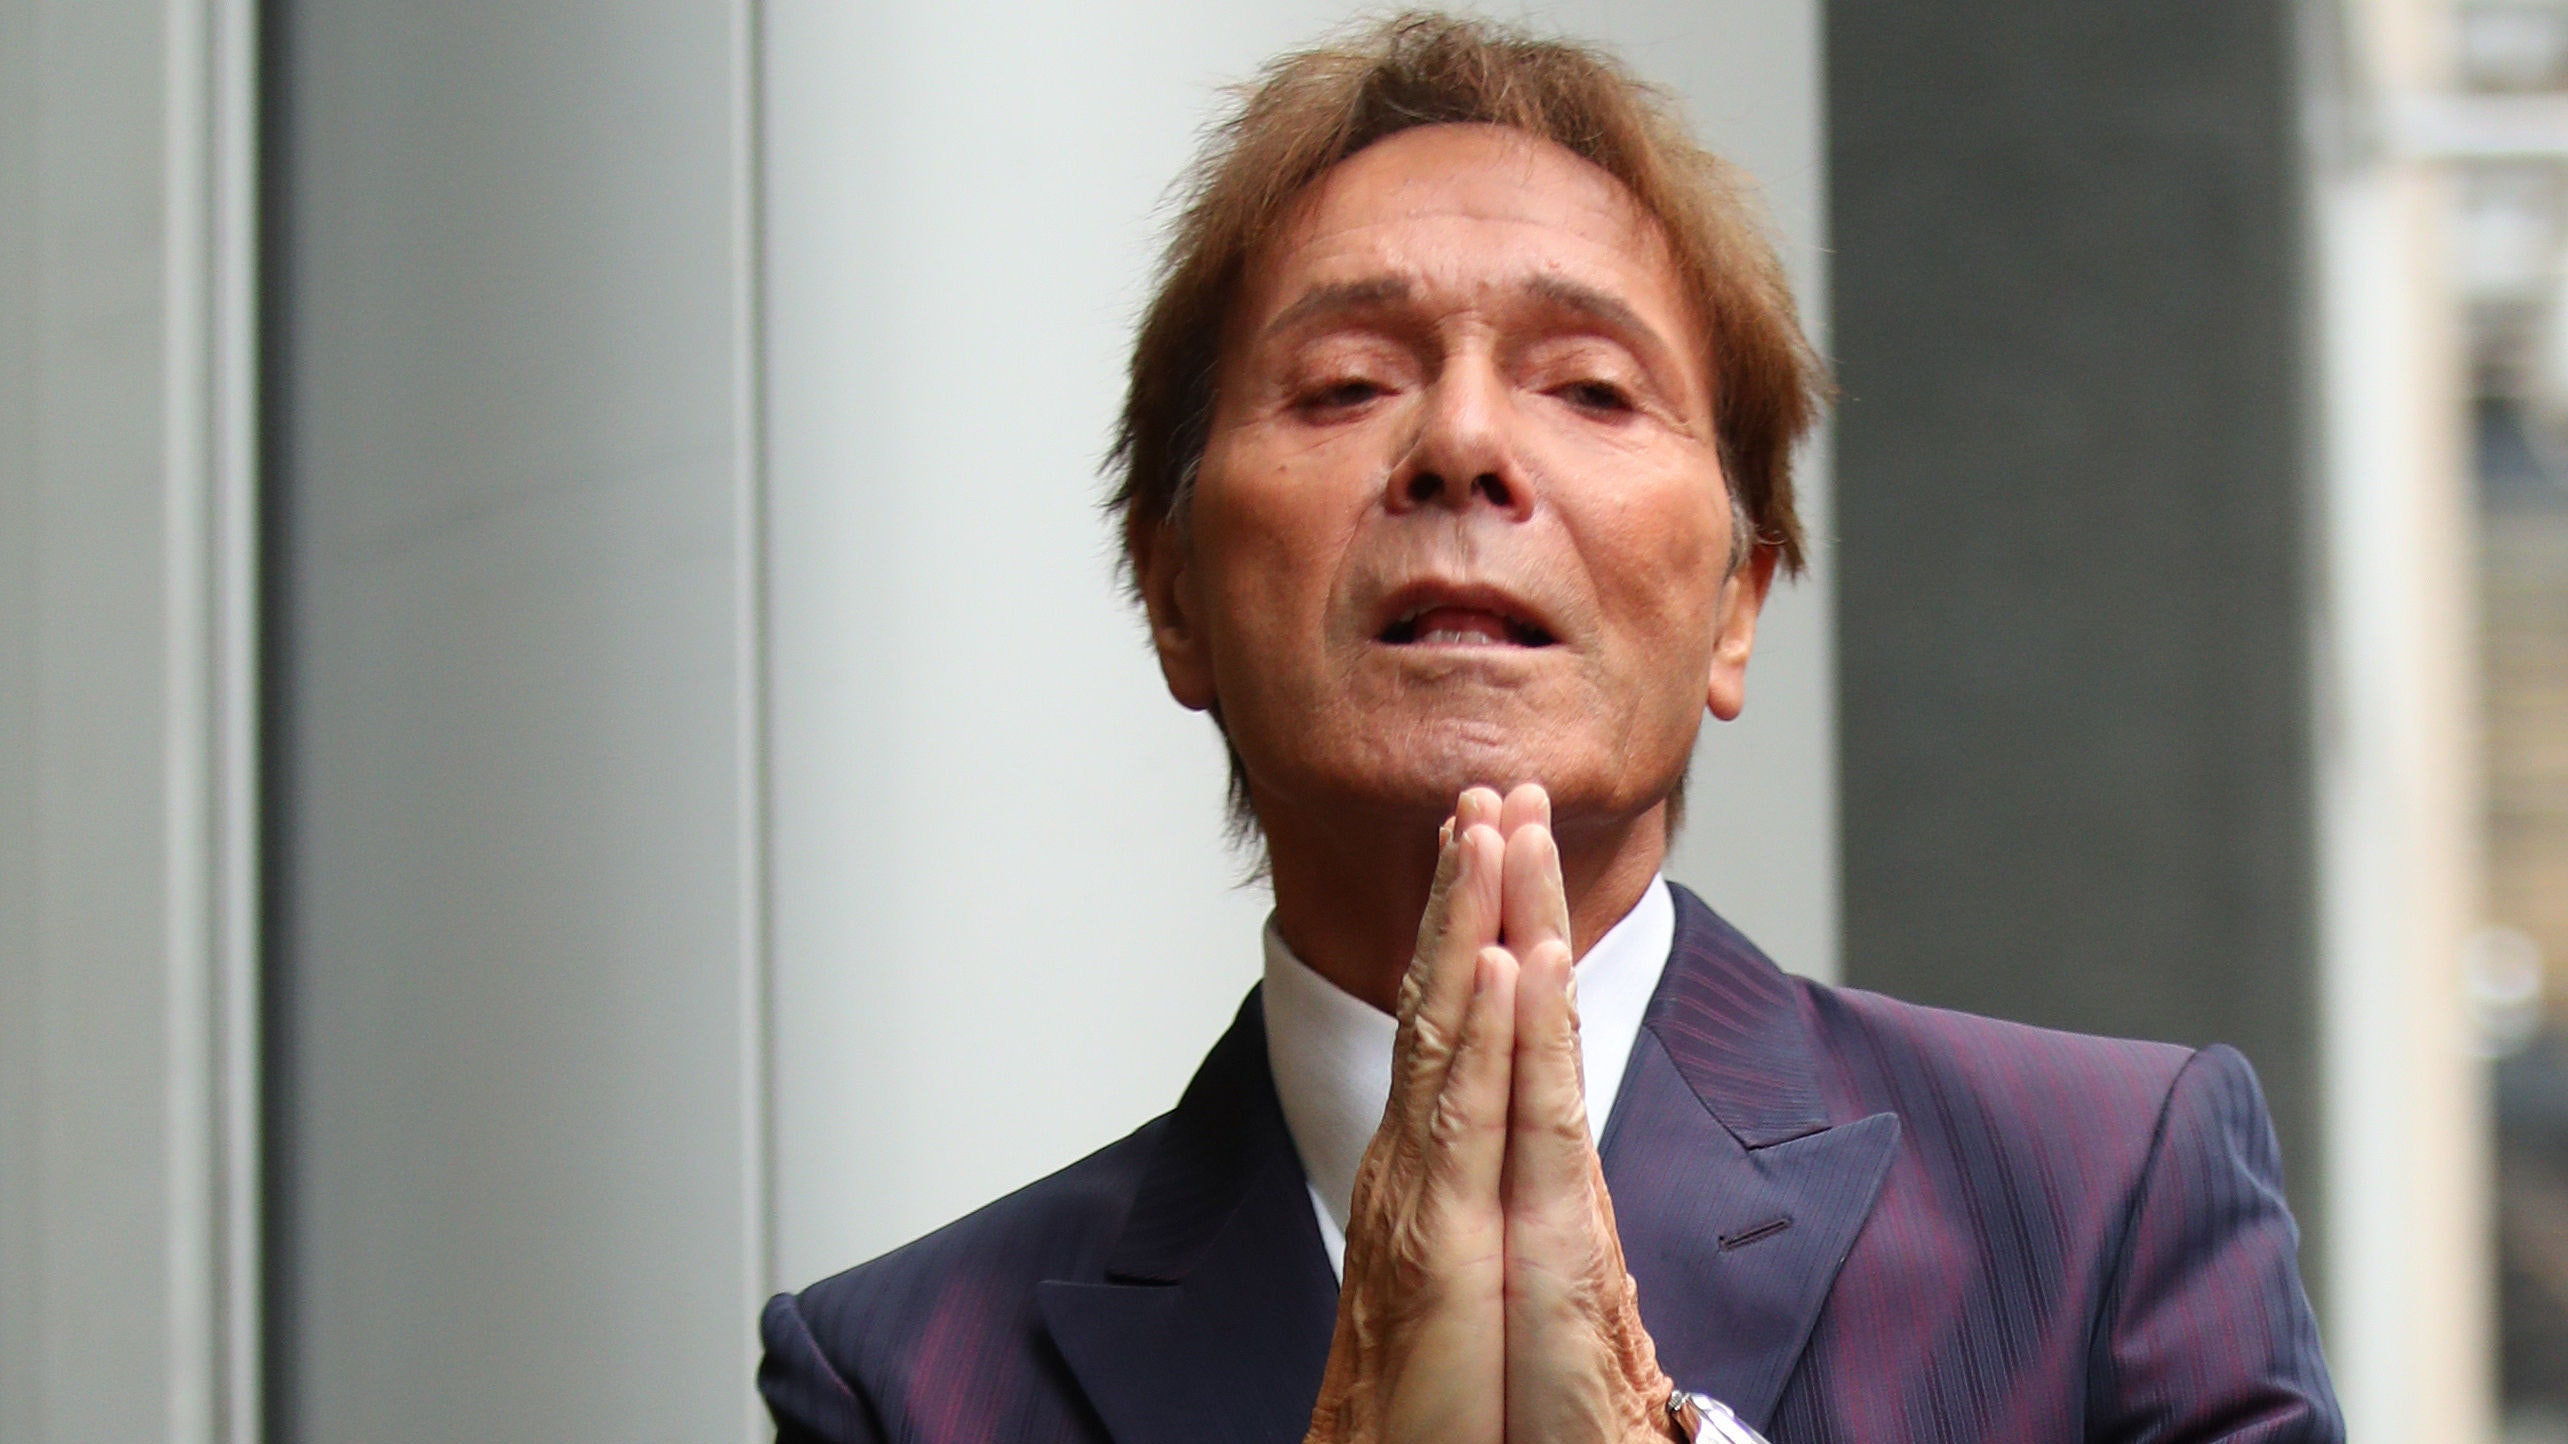 BBC reports on Sir Cliff raid 'breached privacy'